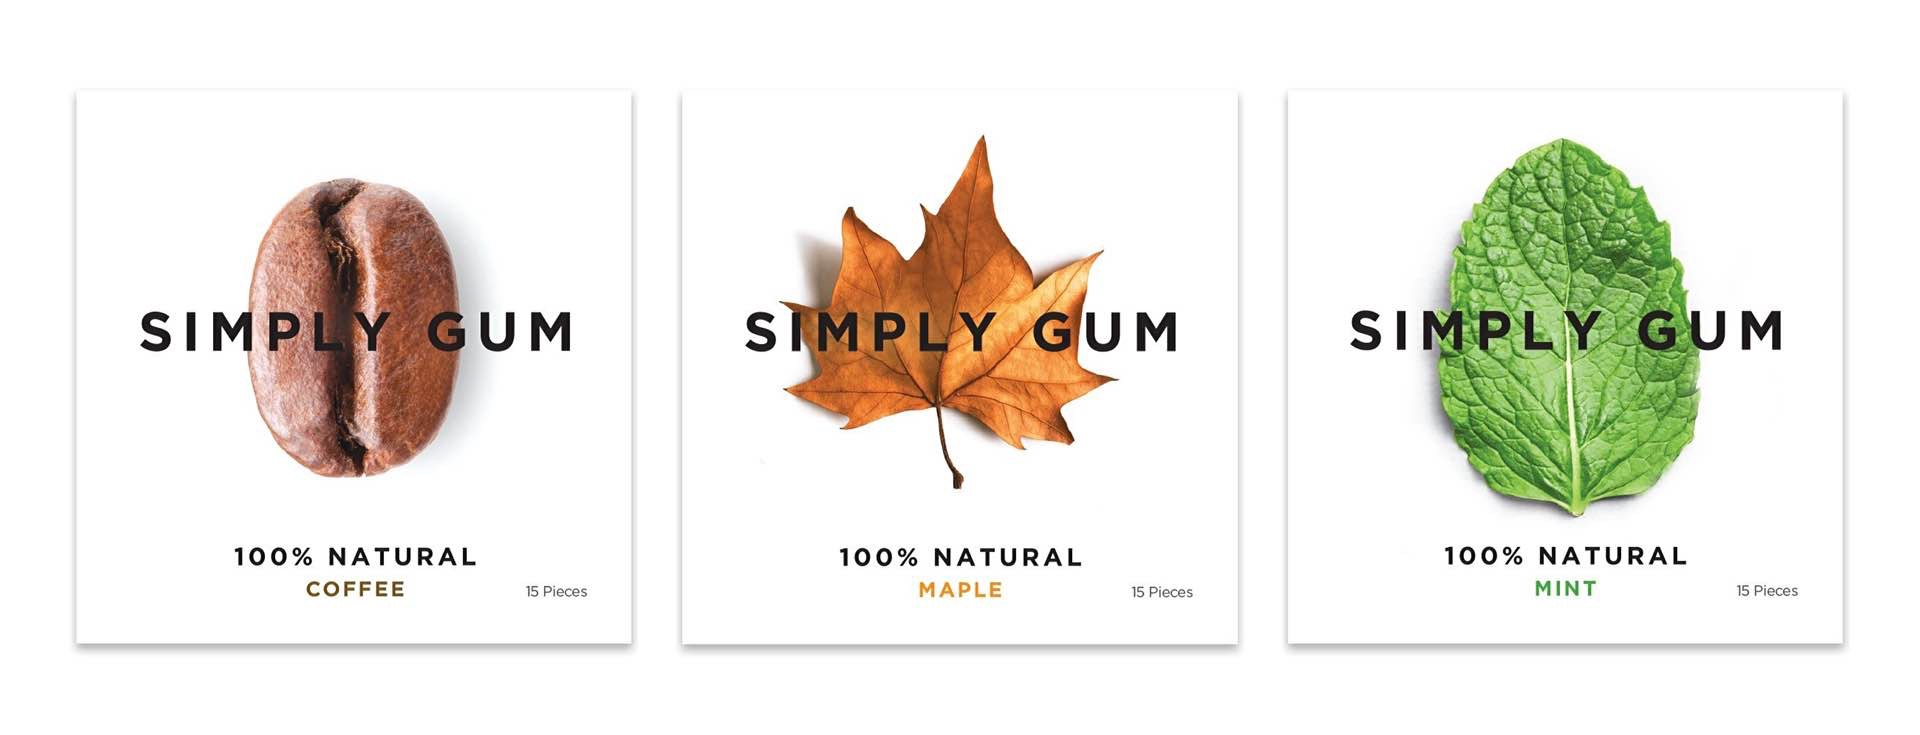 simply-gum-all-natural-chewing-gum